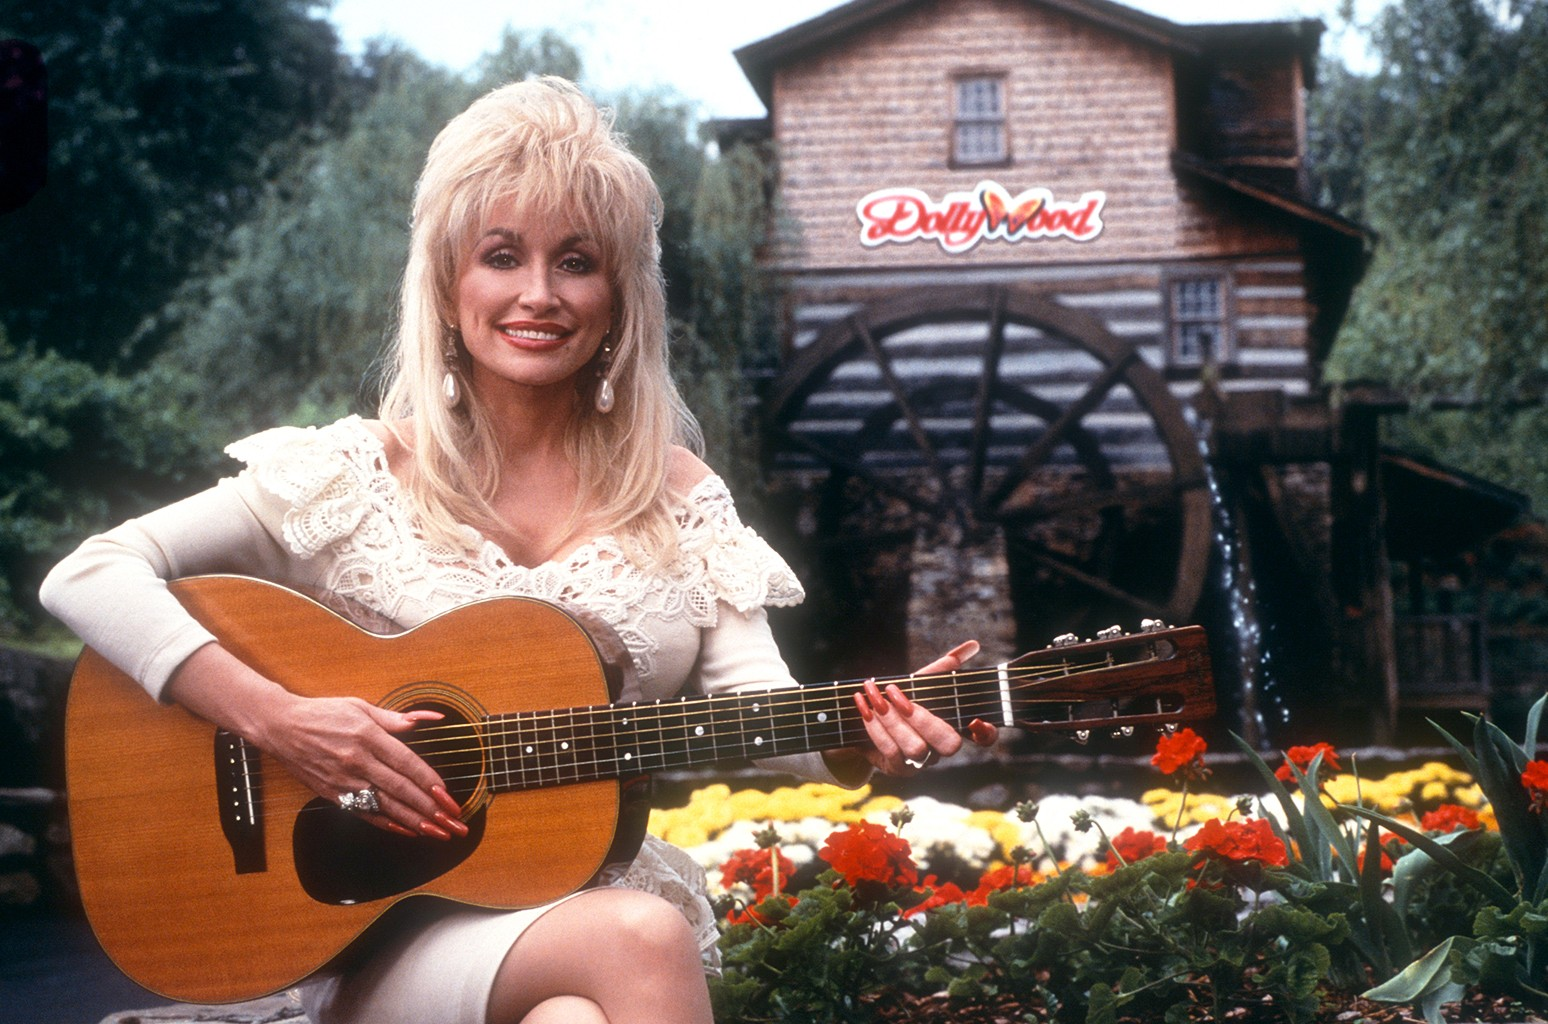 Dollywood Opens For 33rd Season Everything To Know About Dolly Parton S Theme Park Billboard Billboard